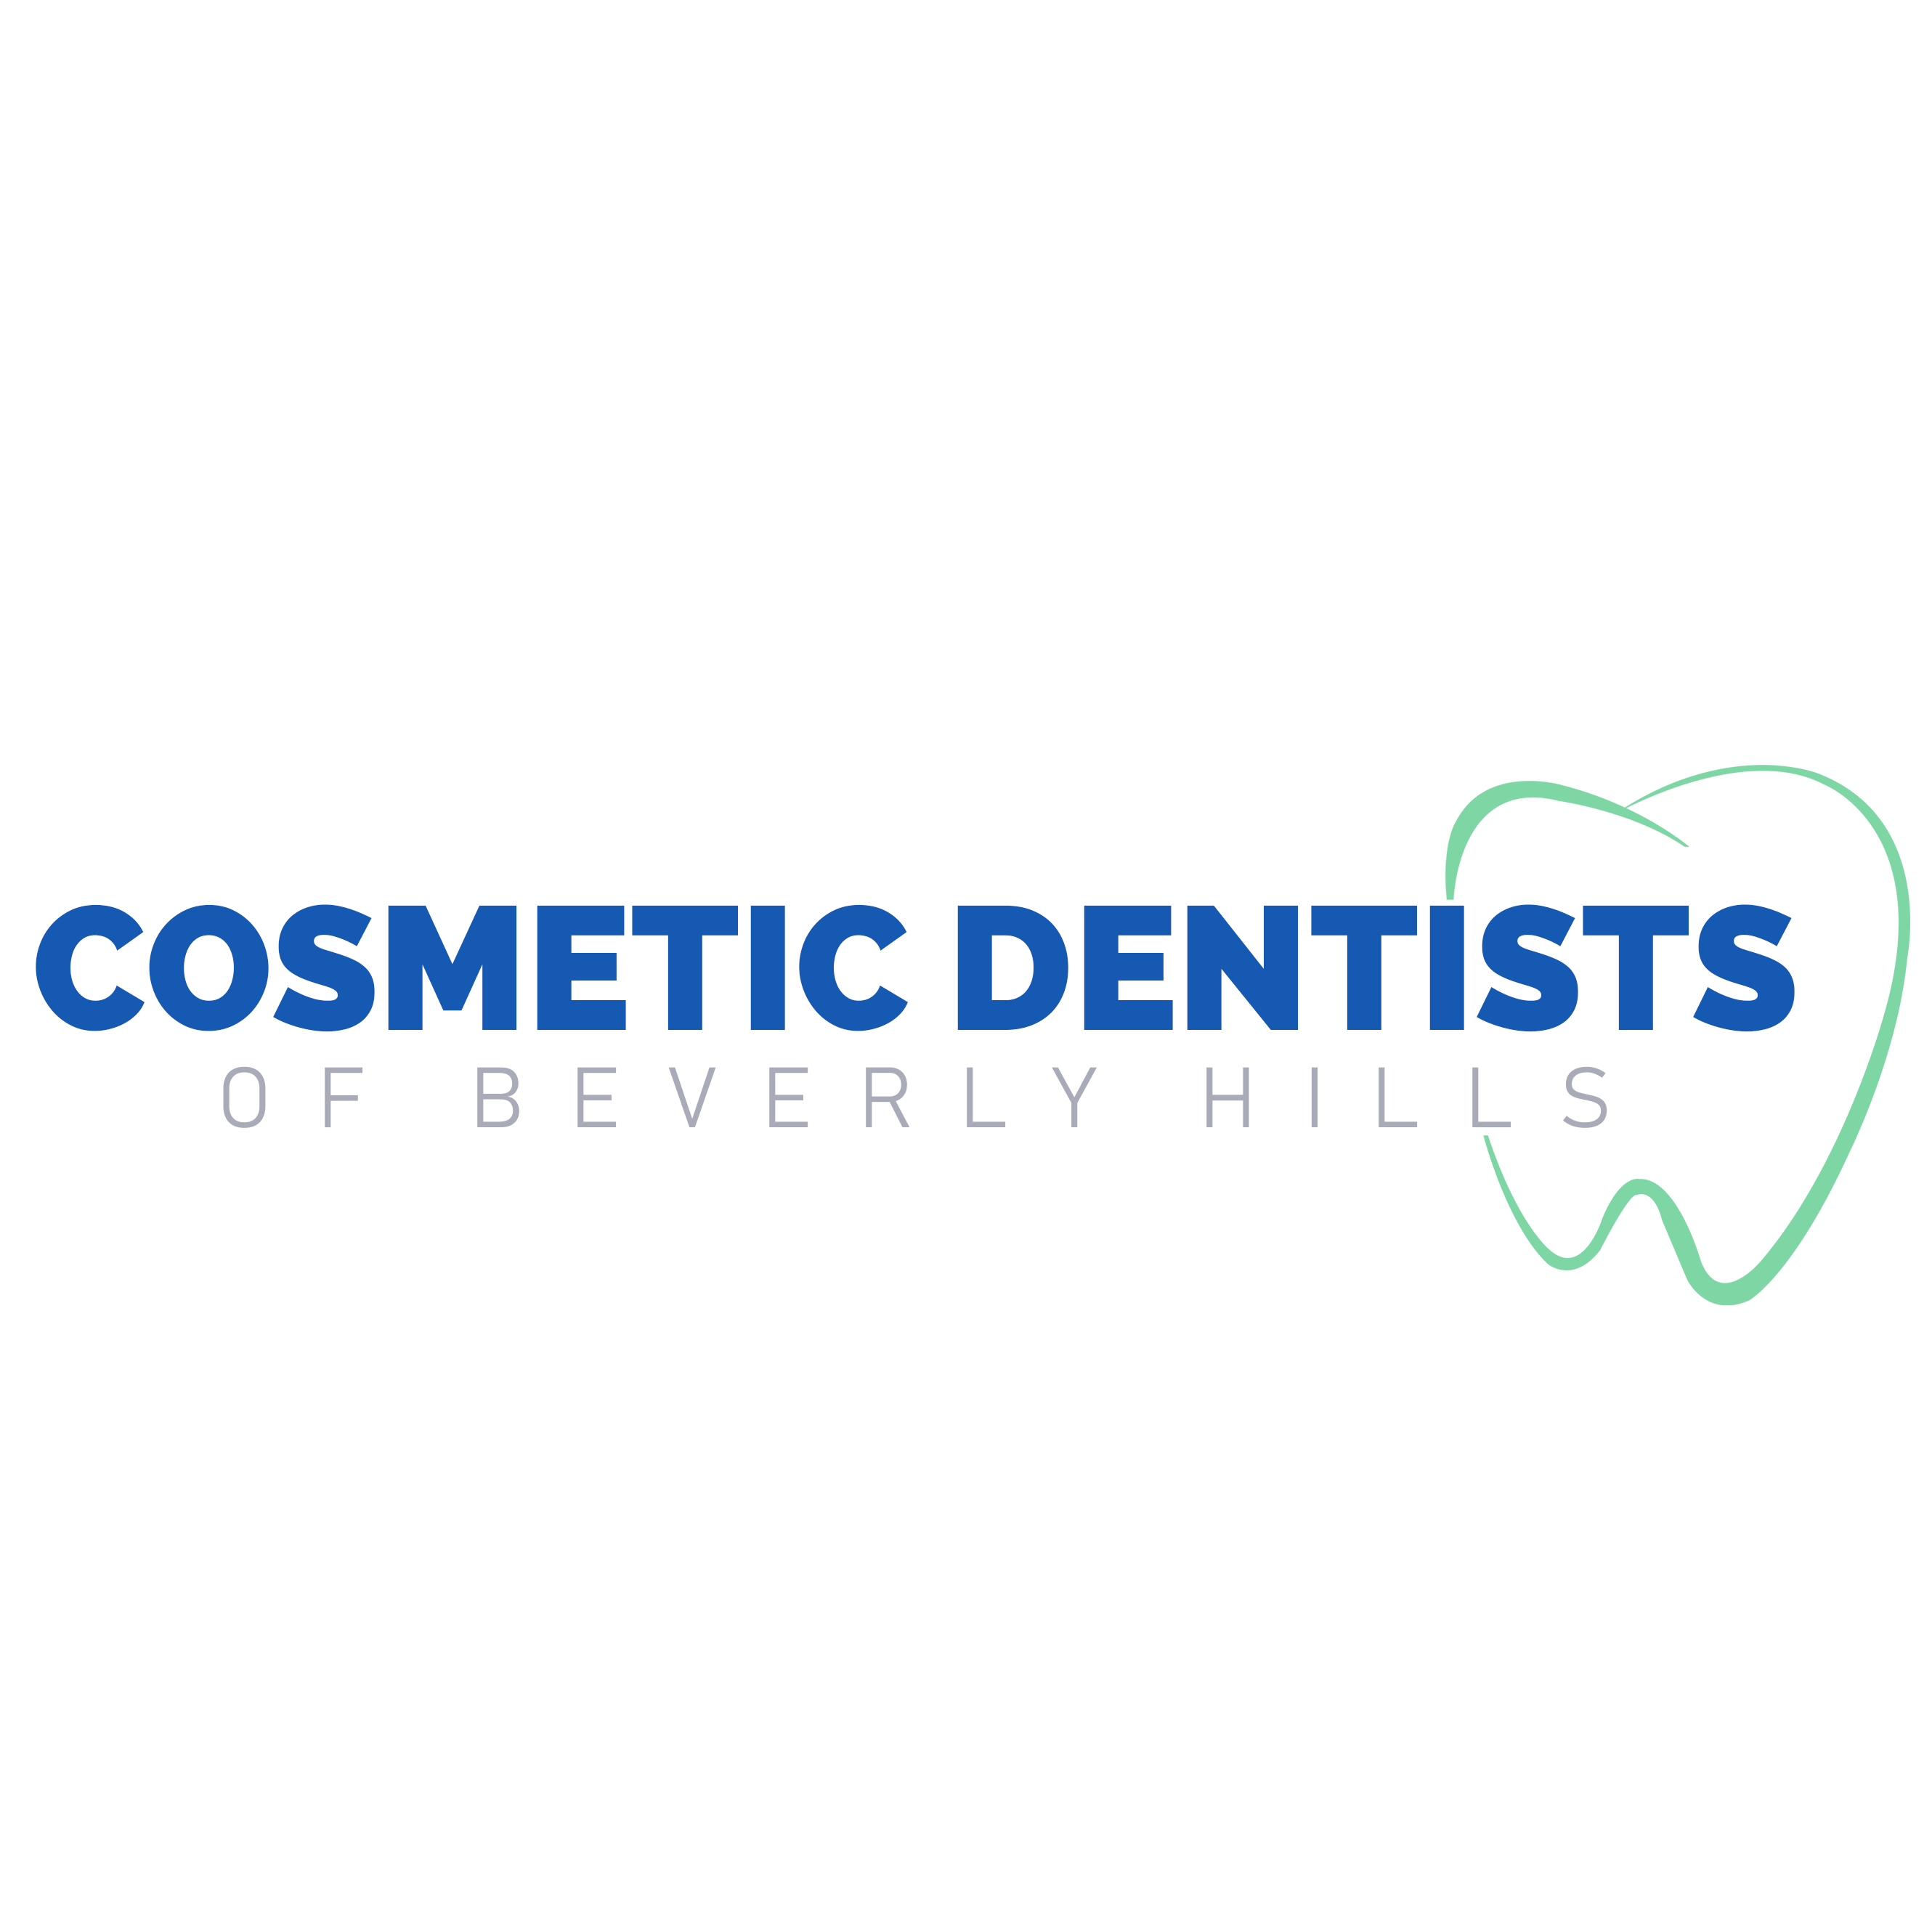 Cosmetic Dentists of Beverly Hills